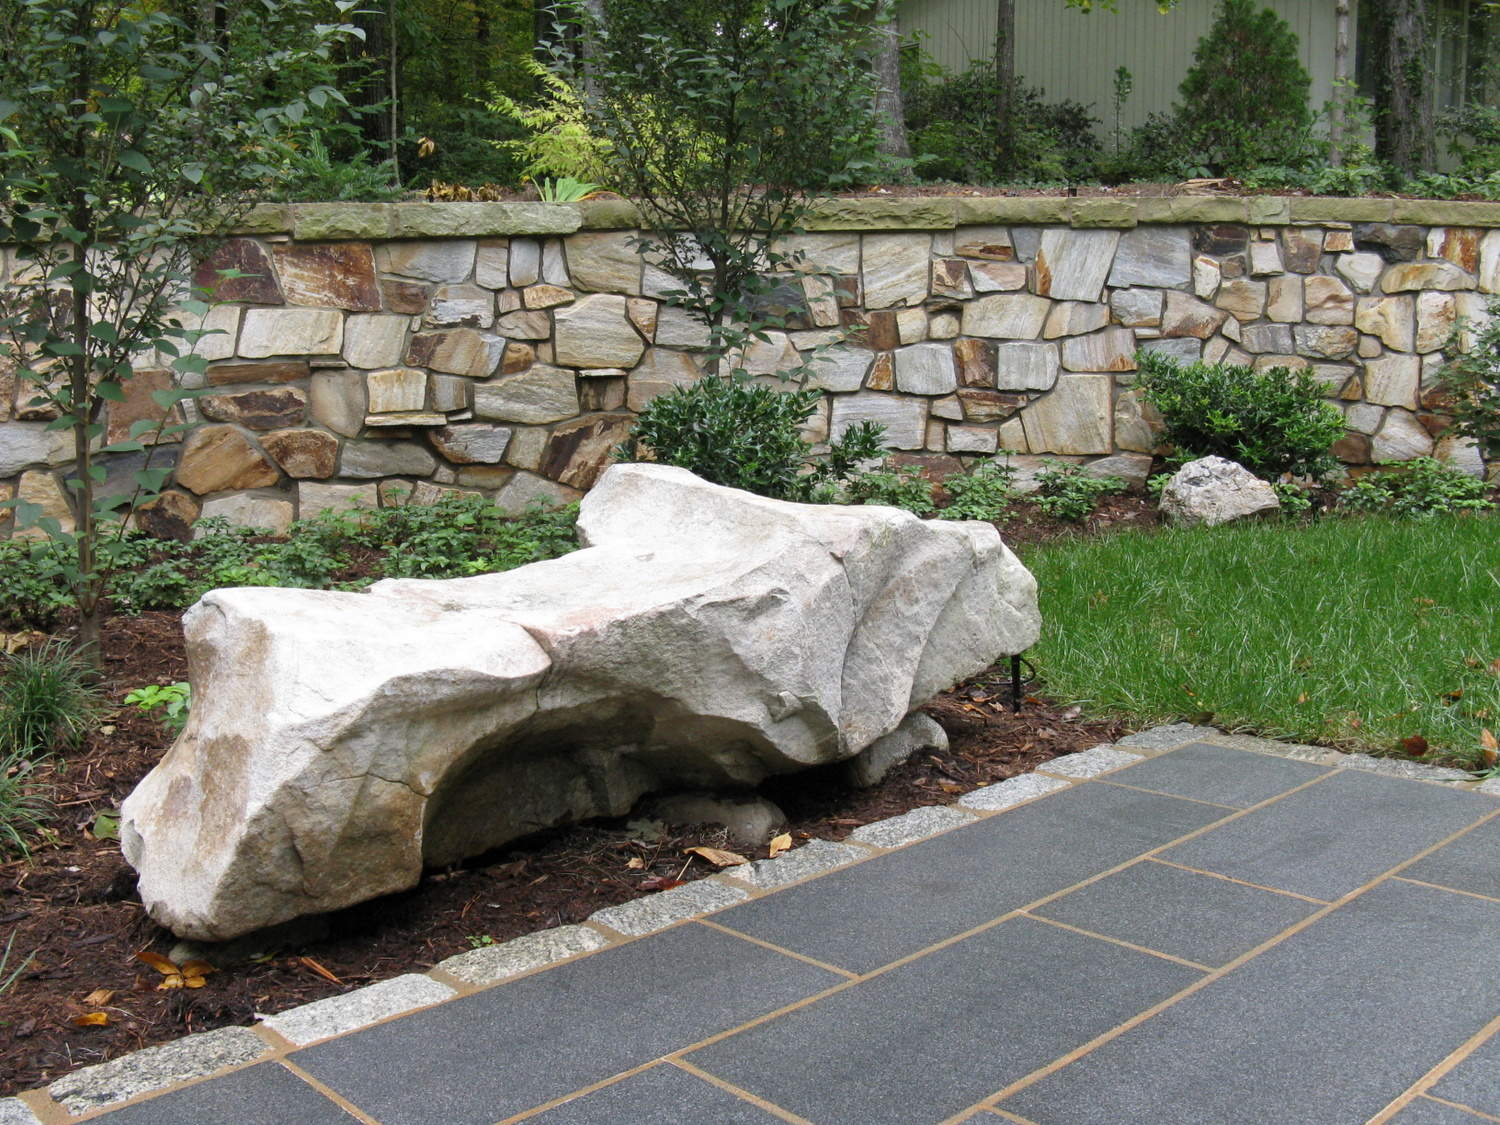 A sculptural sandstone bench accents the walkway.